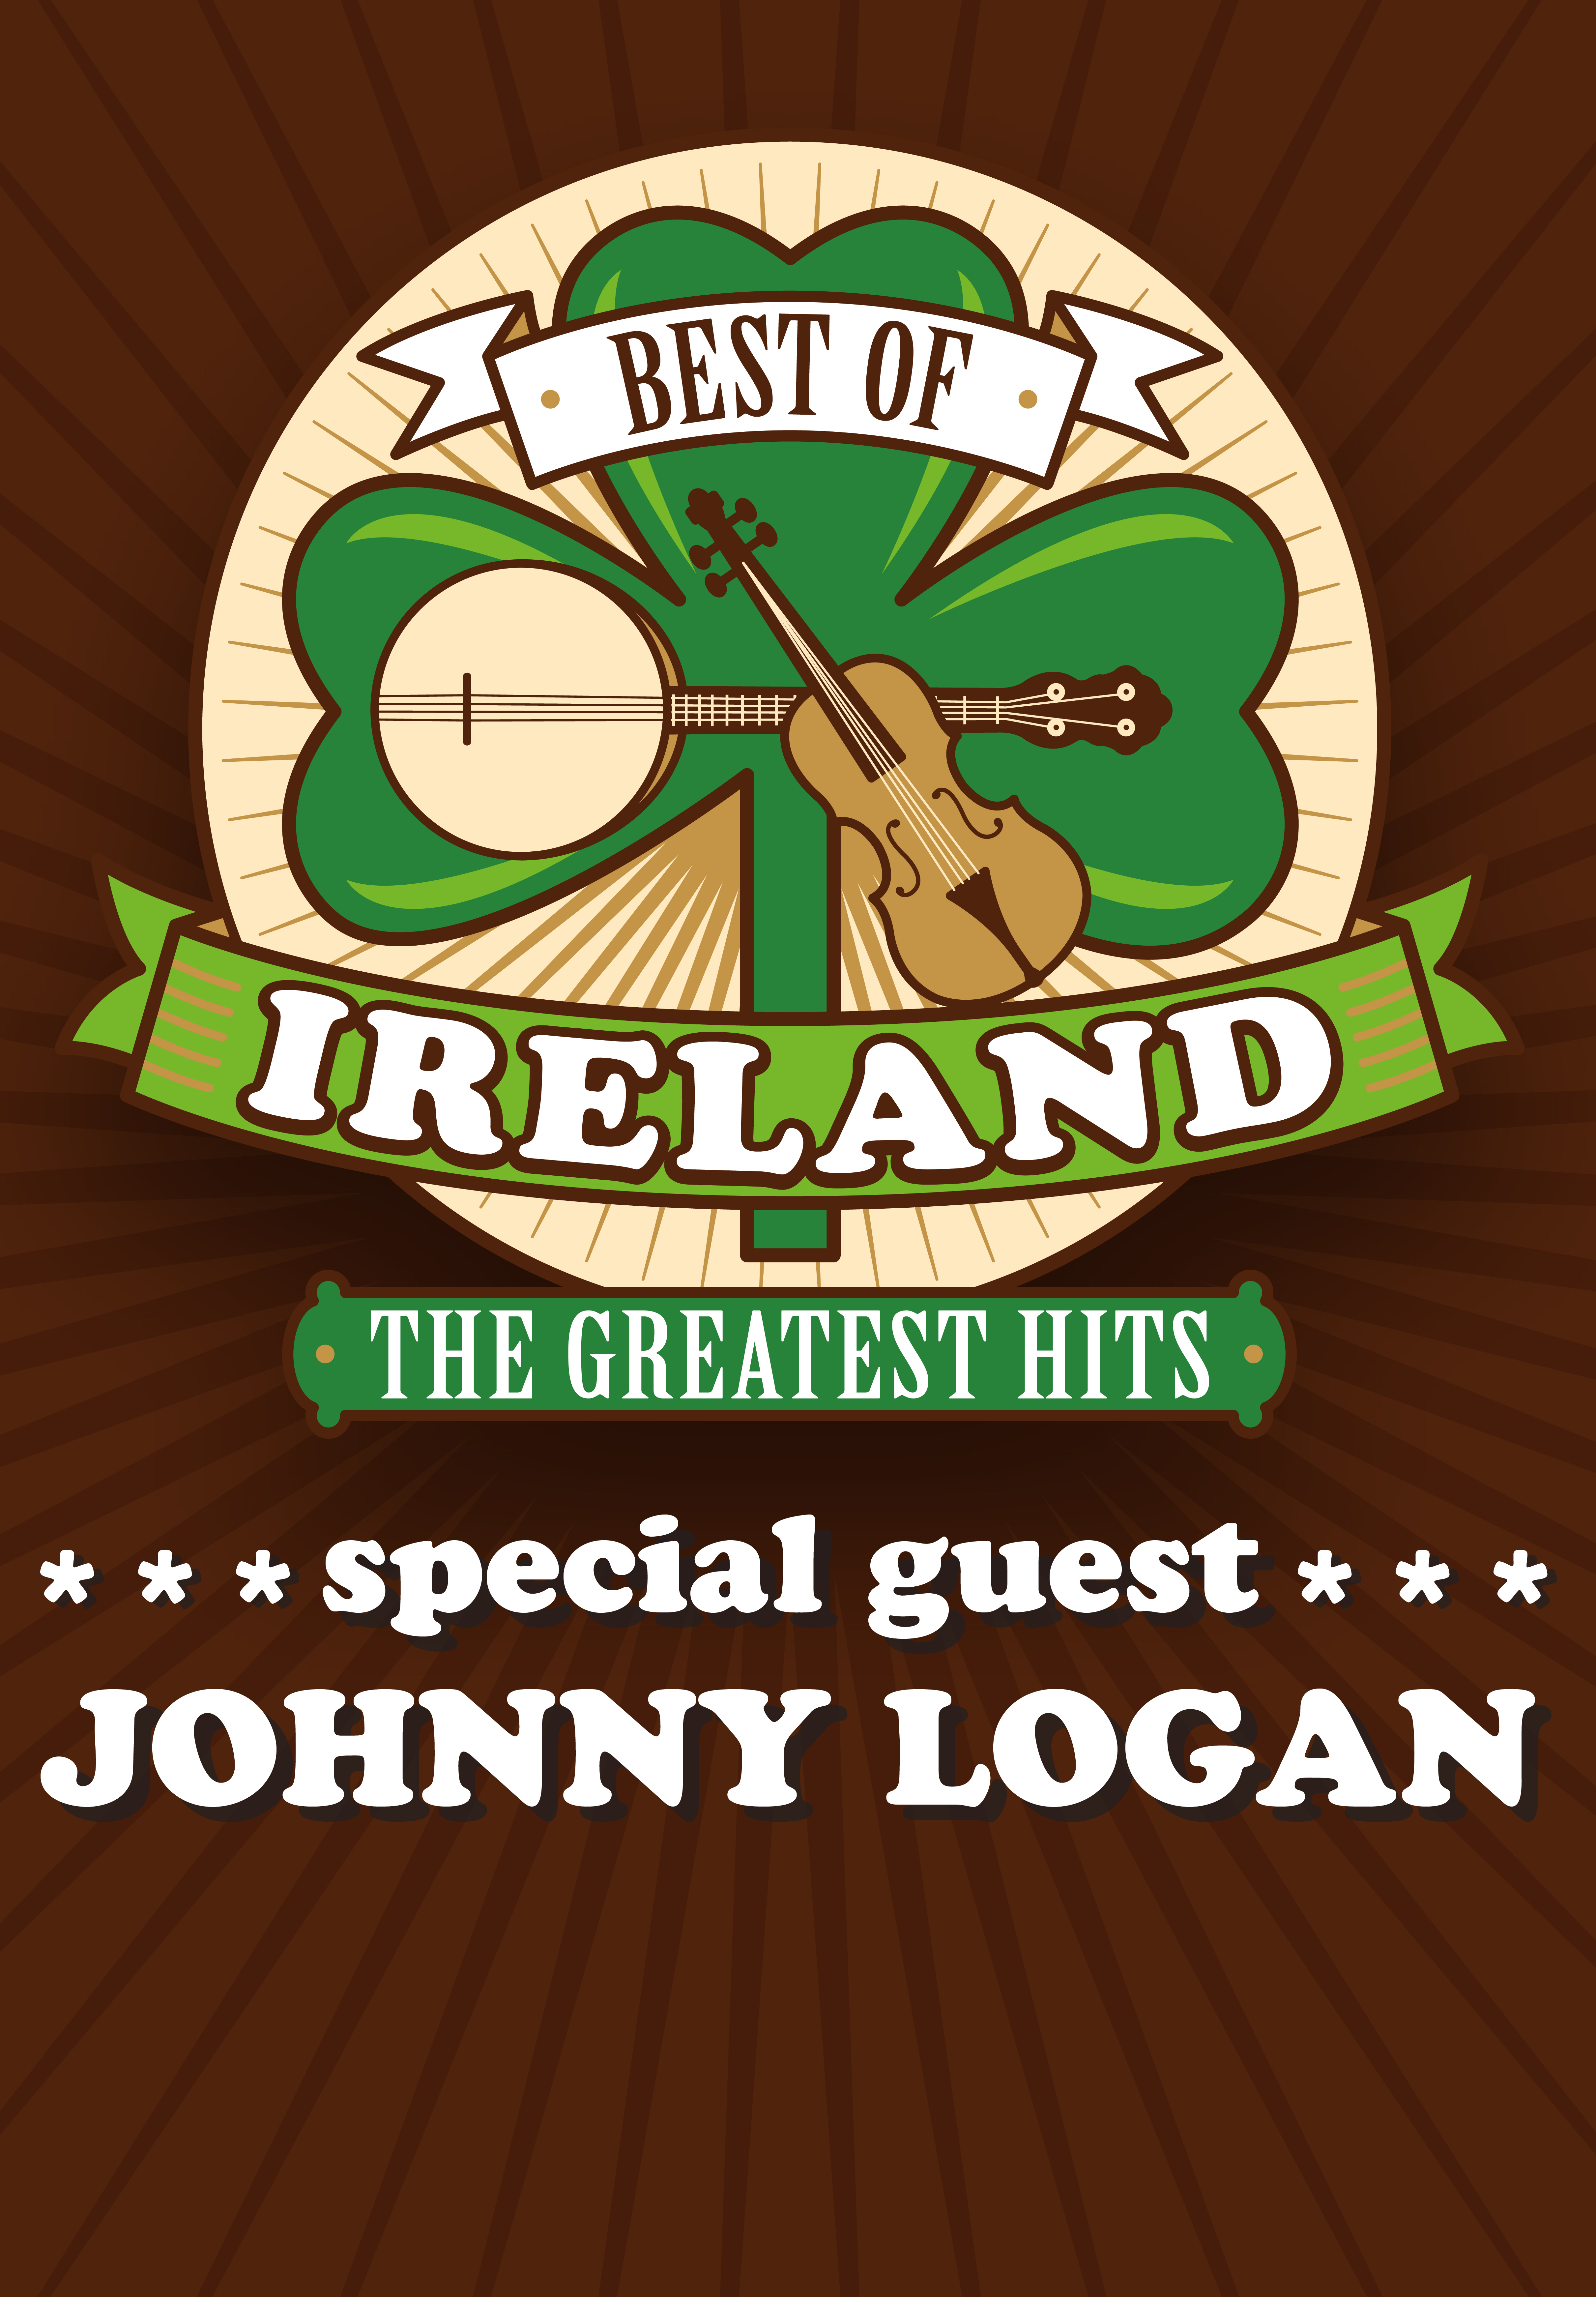 Best of Ireland - special guest Johnny Logan